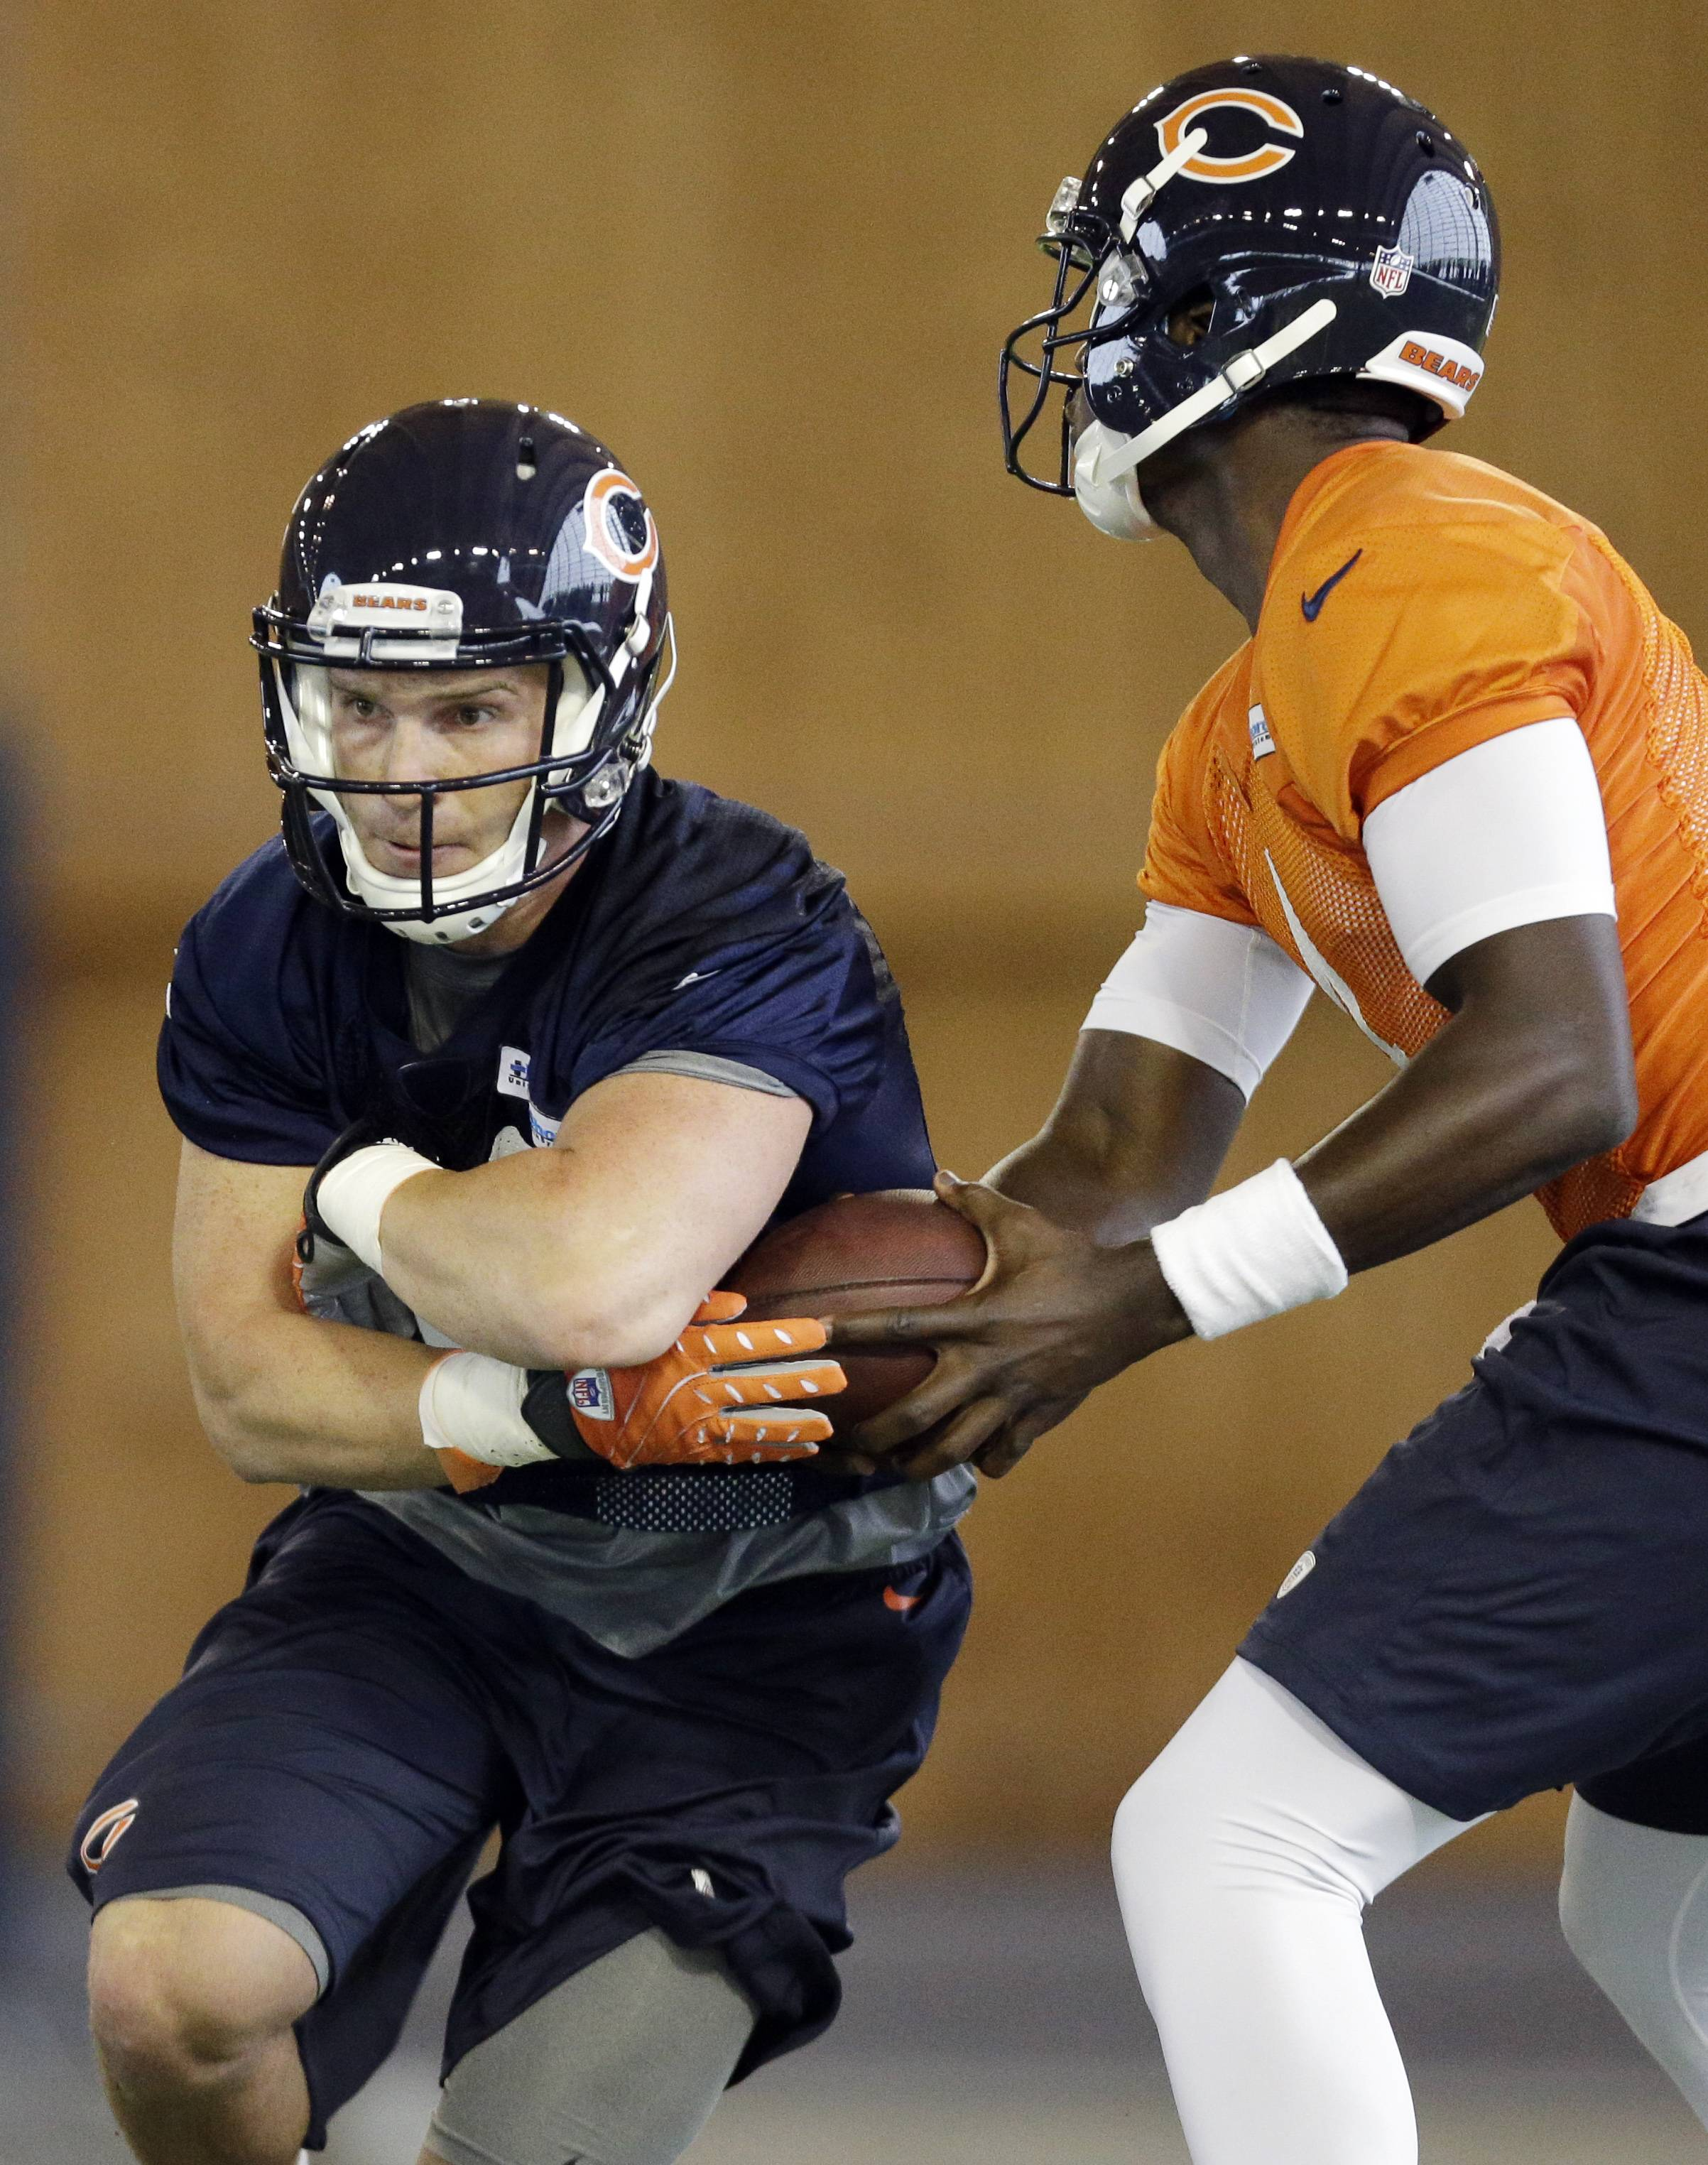 After appearing briefly in two preseason games, former NIU star Jordan Lynch will be waived by the Chicago Bears.